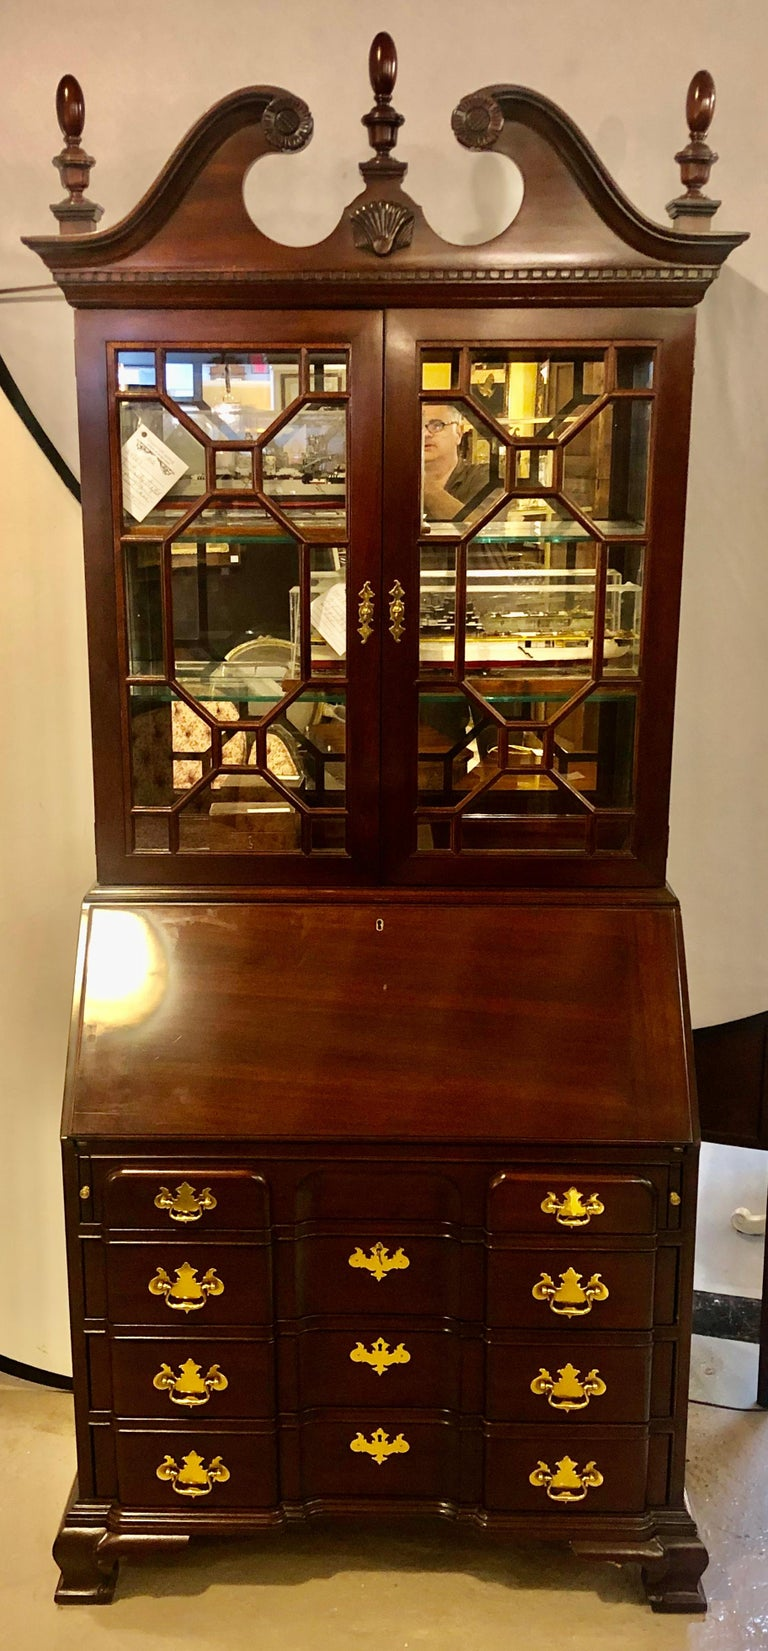 Chinese Chippendale Pennsylvania House Secretary Desk / Bookcase in the Chippendale Style For Sale